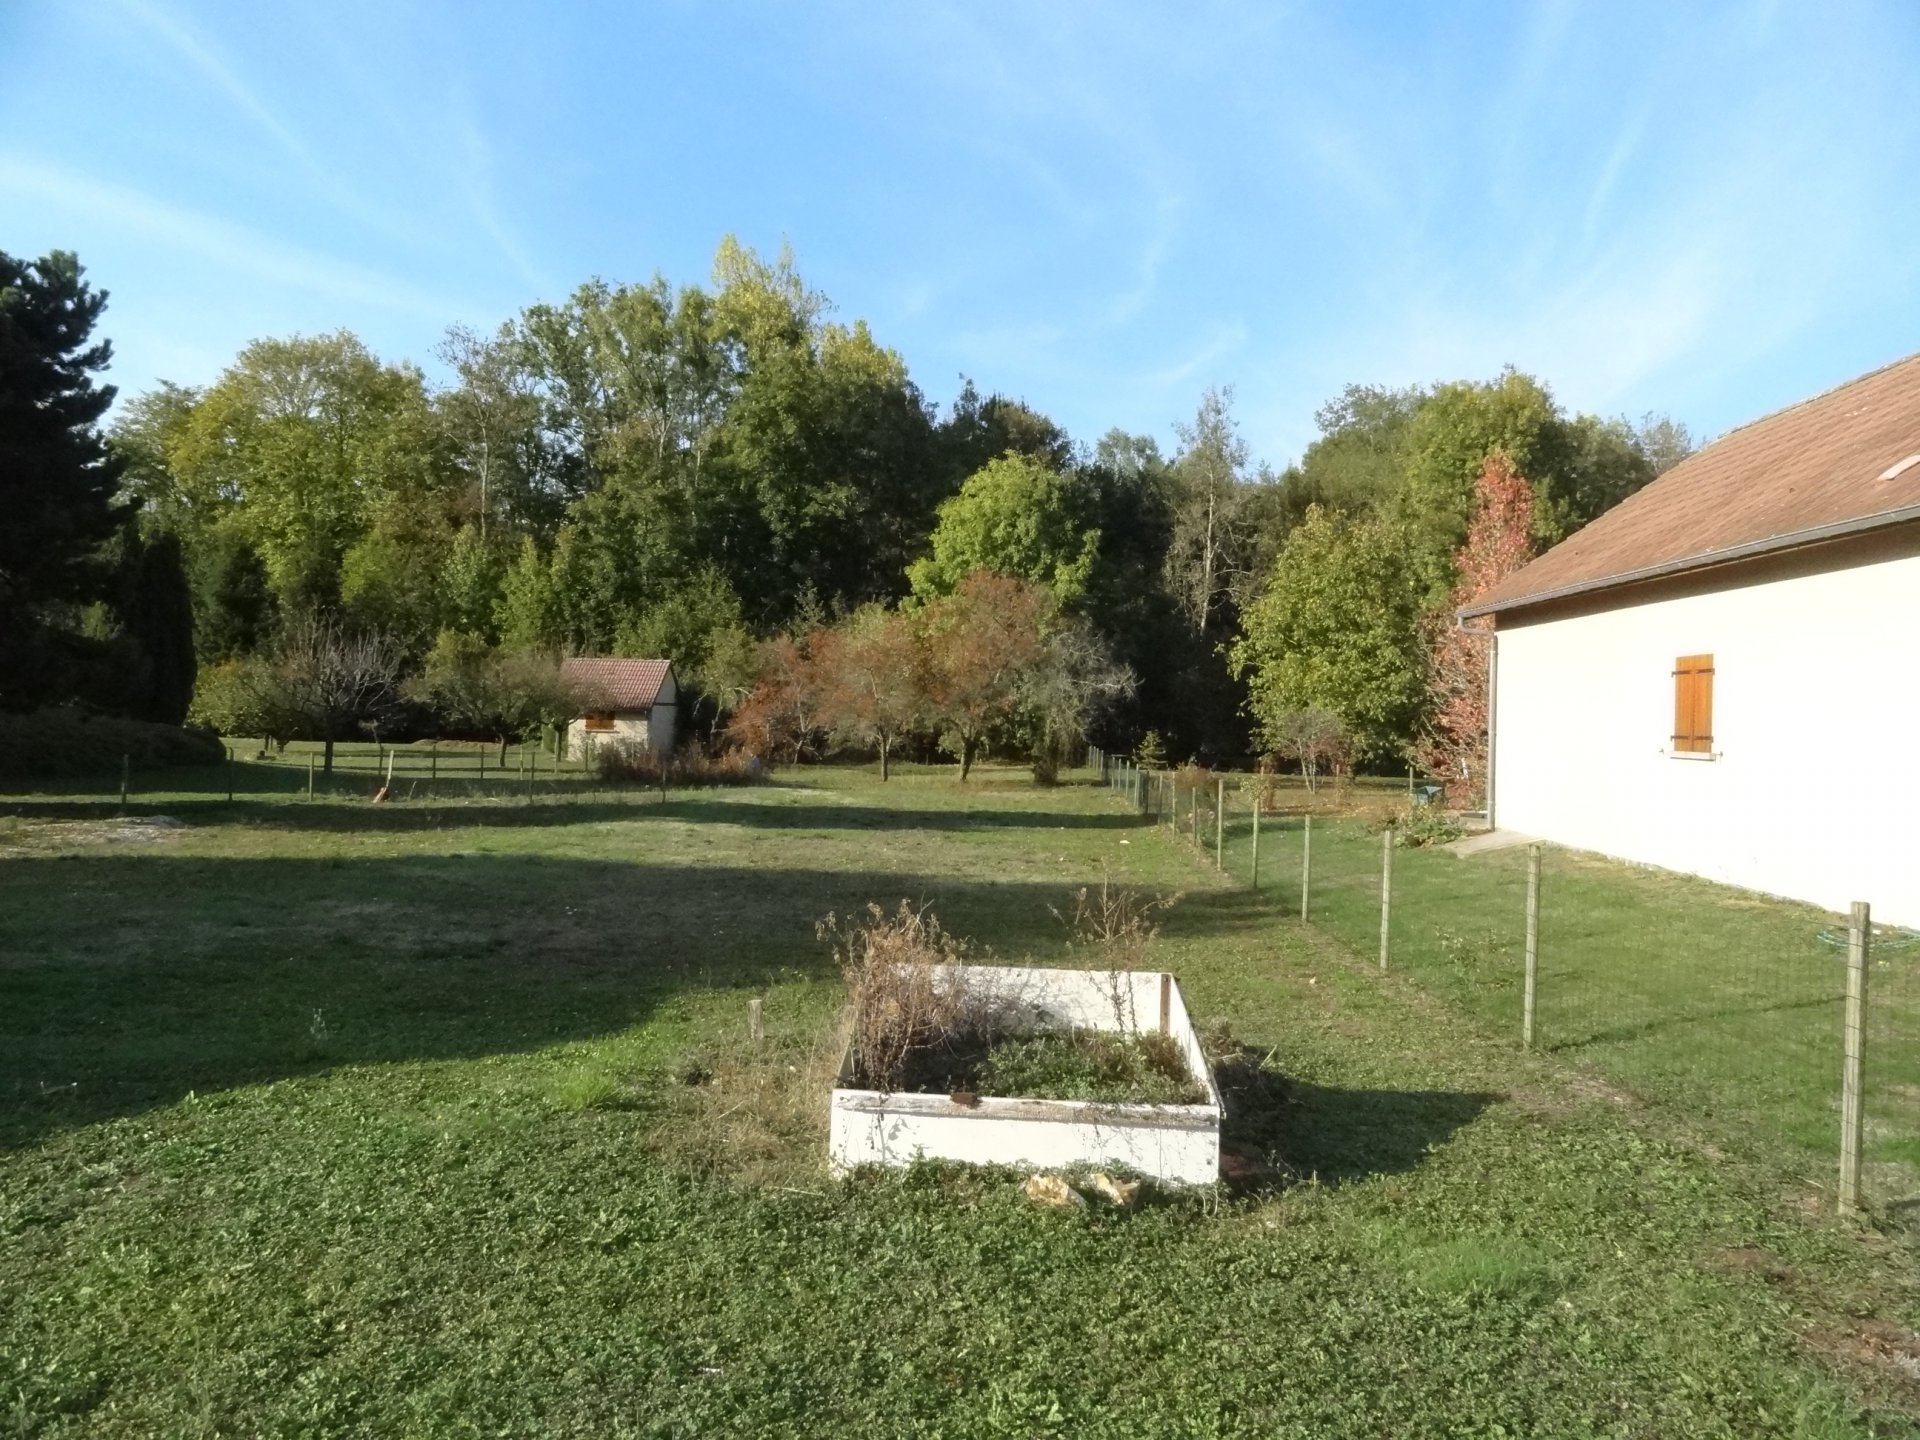 Sale Building land - Saint-Julien-du-Sault